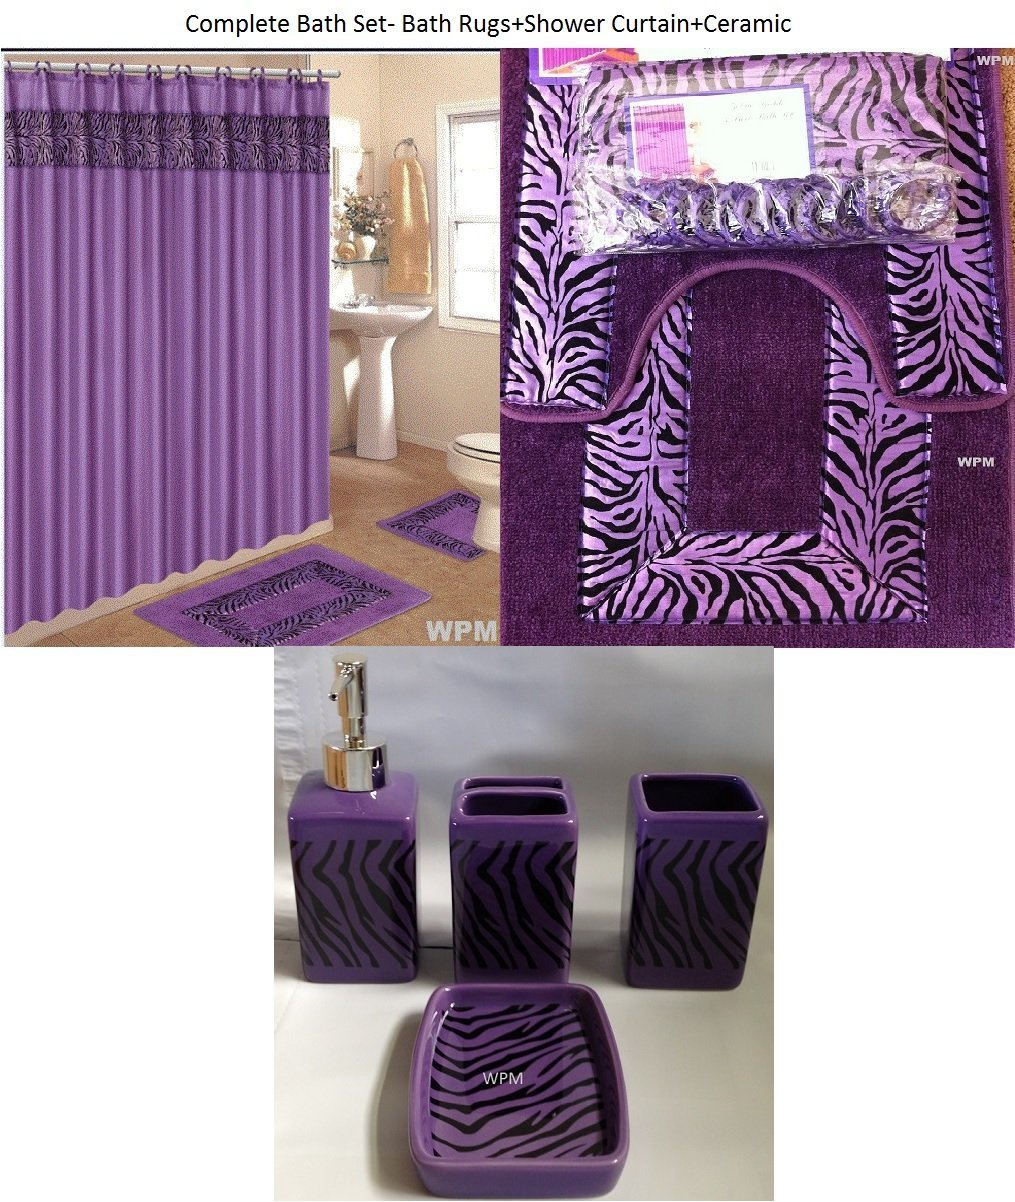 19 Piece Bath Accessory Set Purple Zebra Bathroom Rugs & Shower Curtain & Accessories